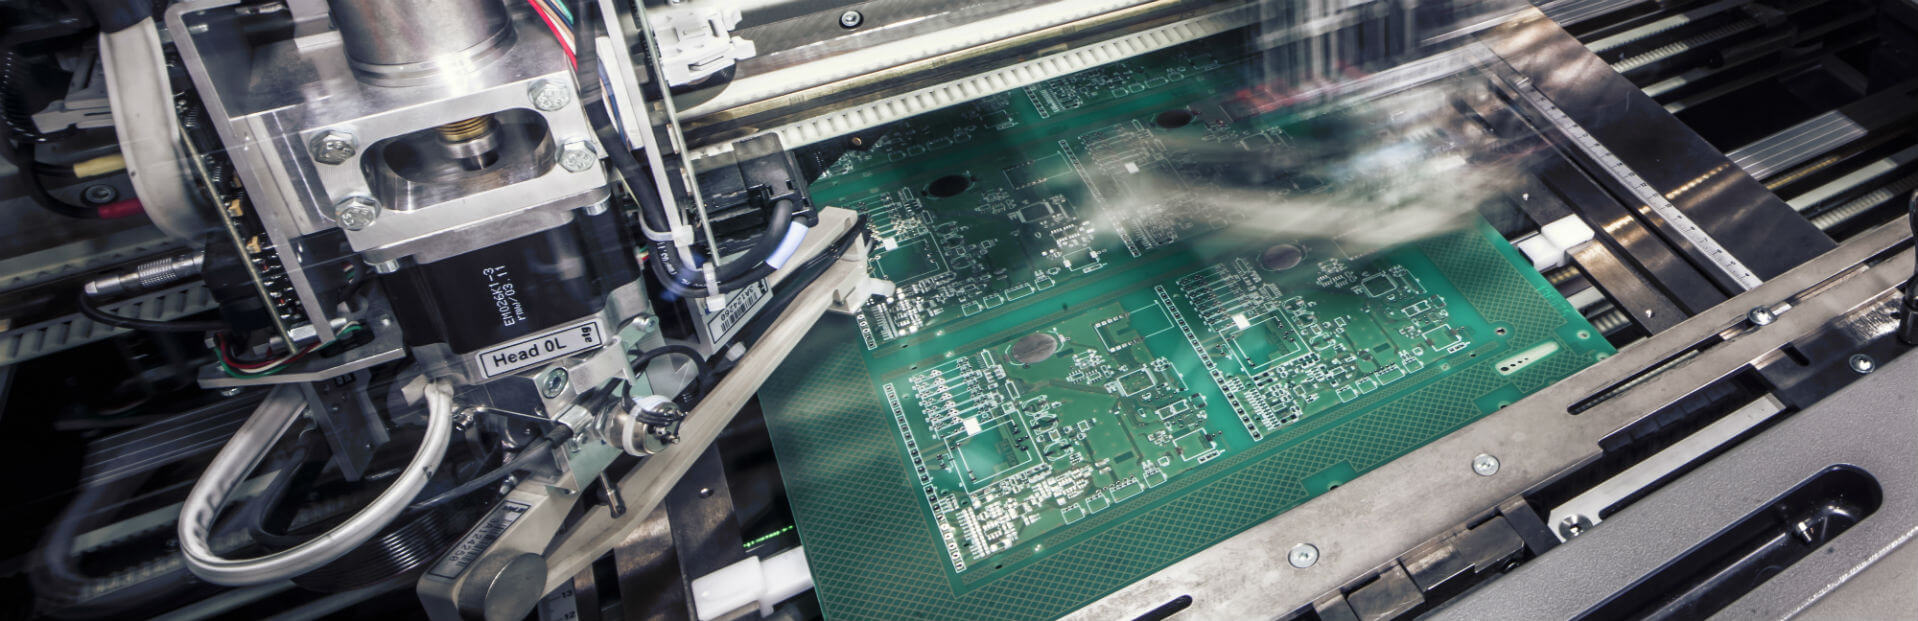 Printed Circuit Boards (PCB) | Manufactory of Printed